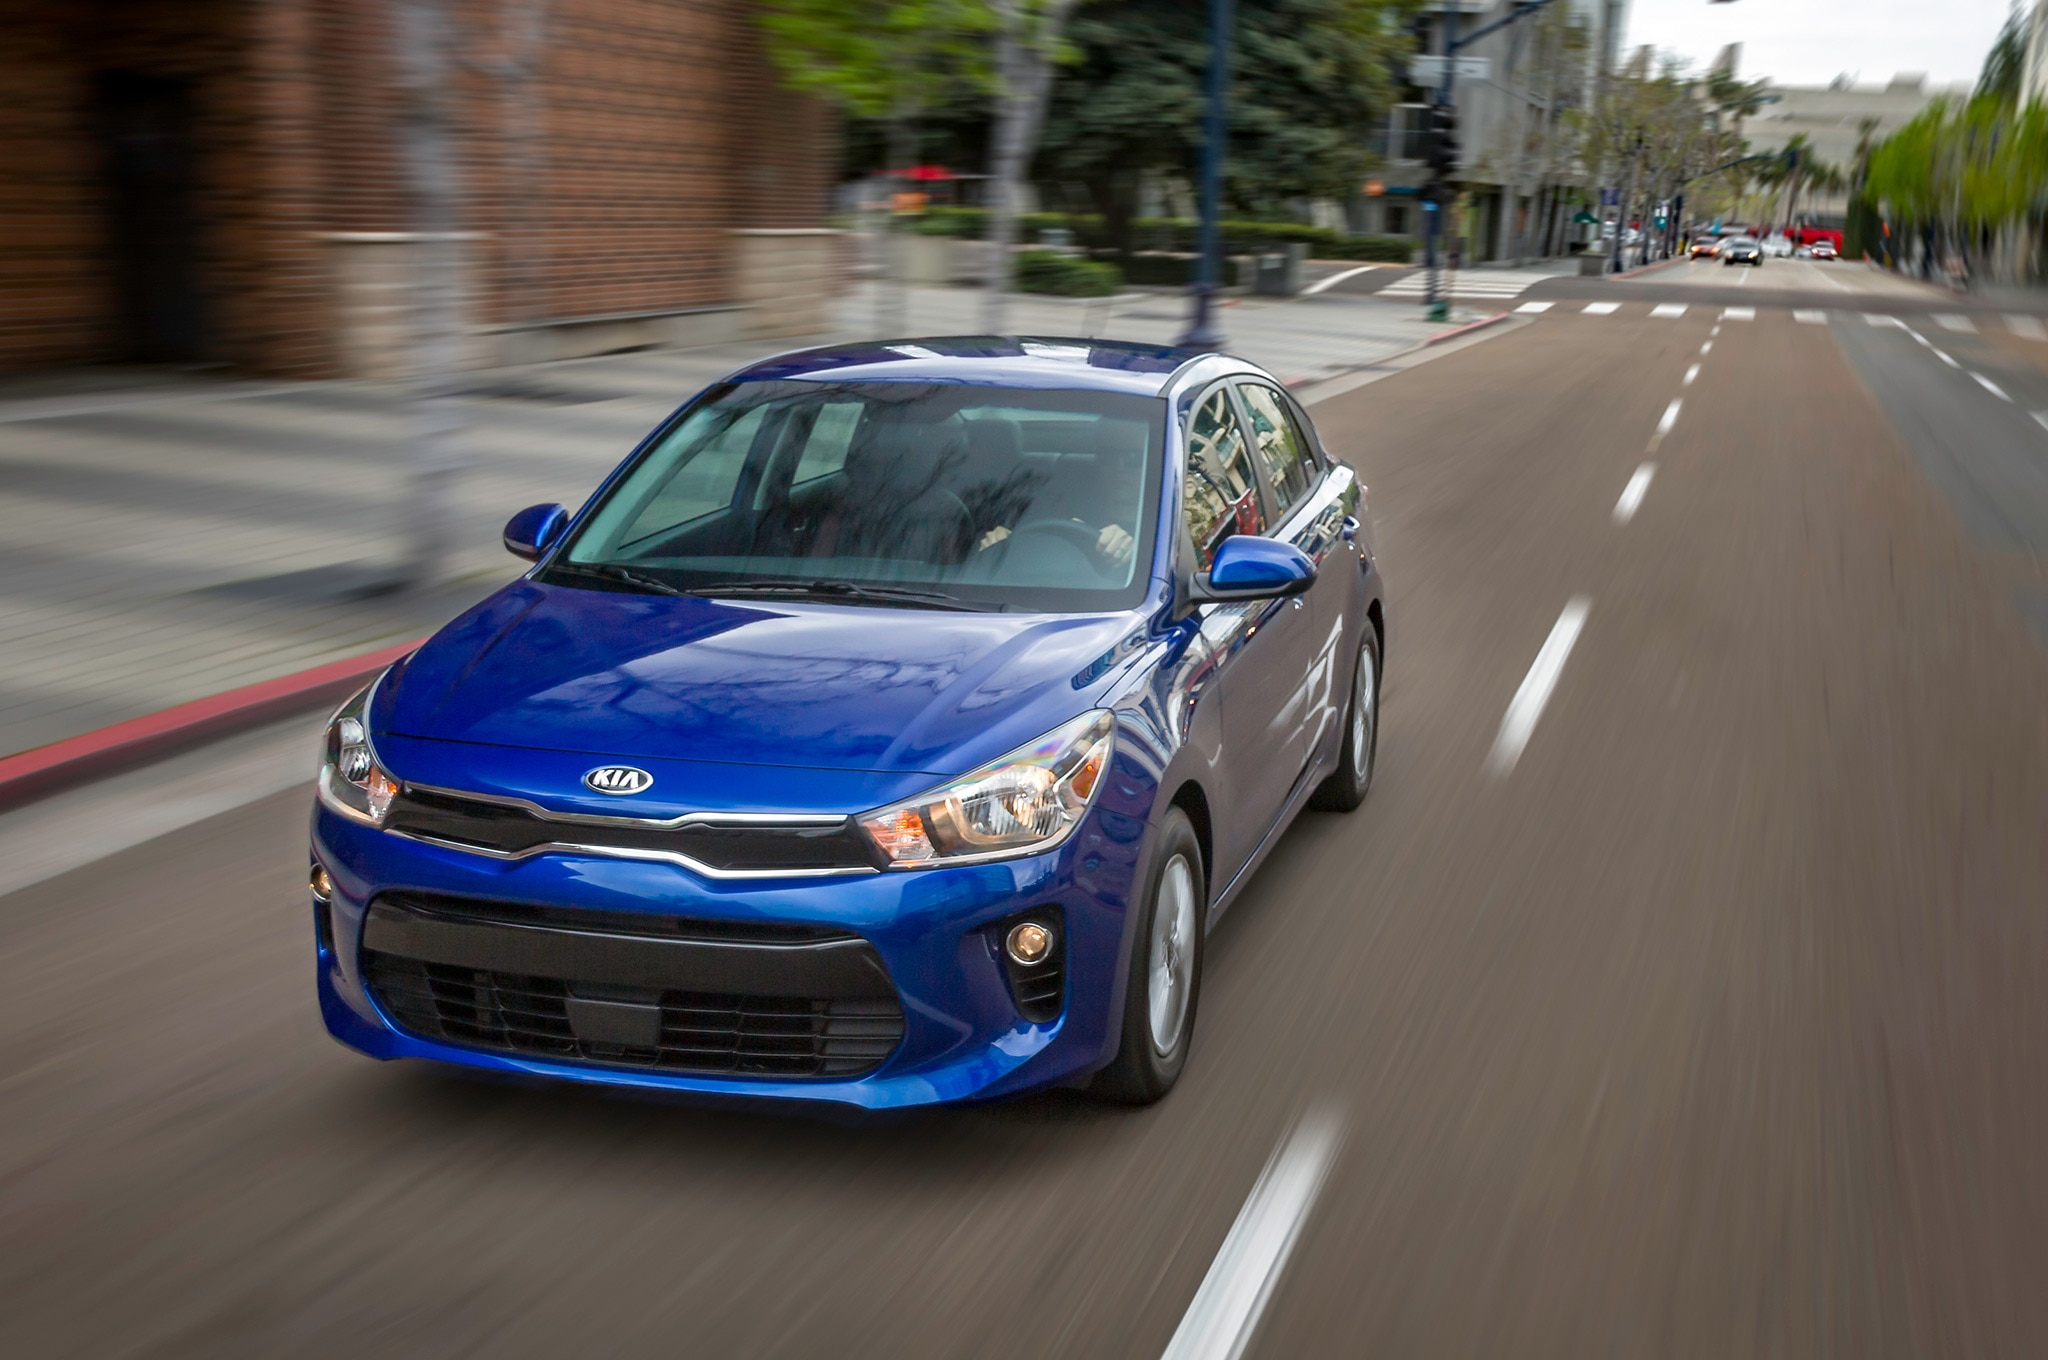 2018 kia rio sedan and hatchback reloaded for new york show automobile magazine. Black Bedroom Furniture Sets. Home Design Ideas